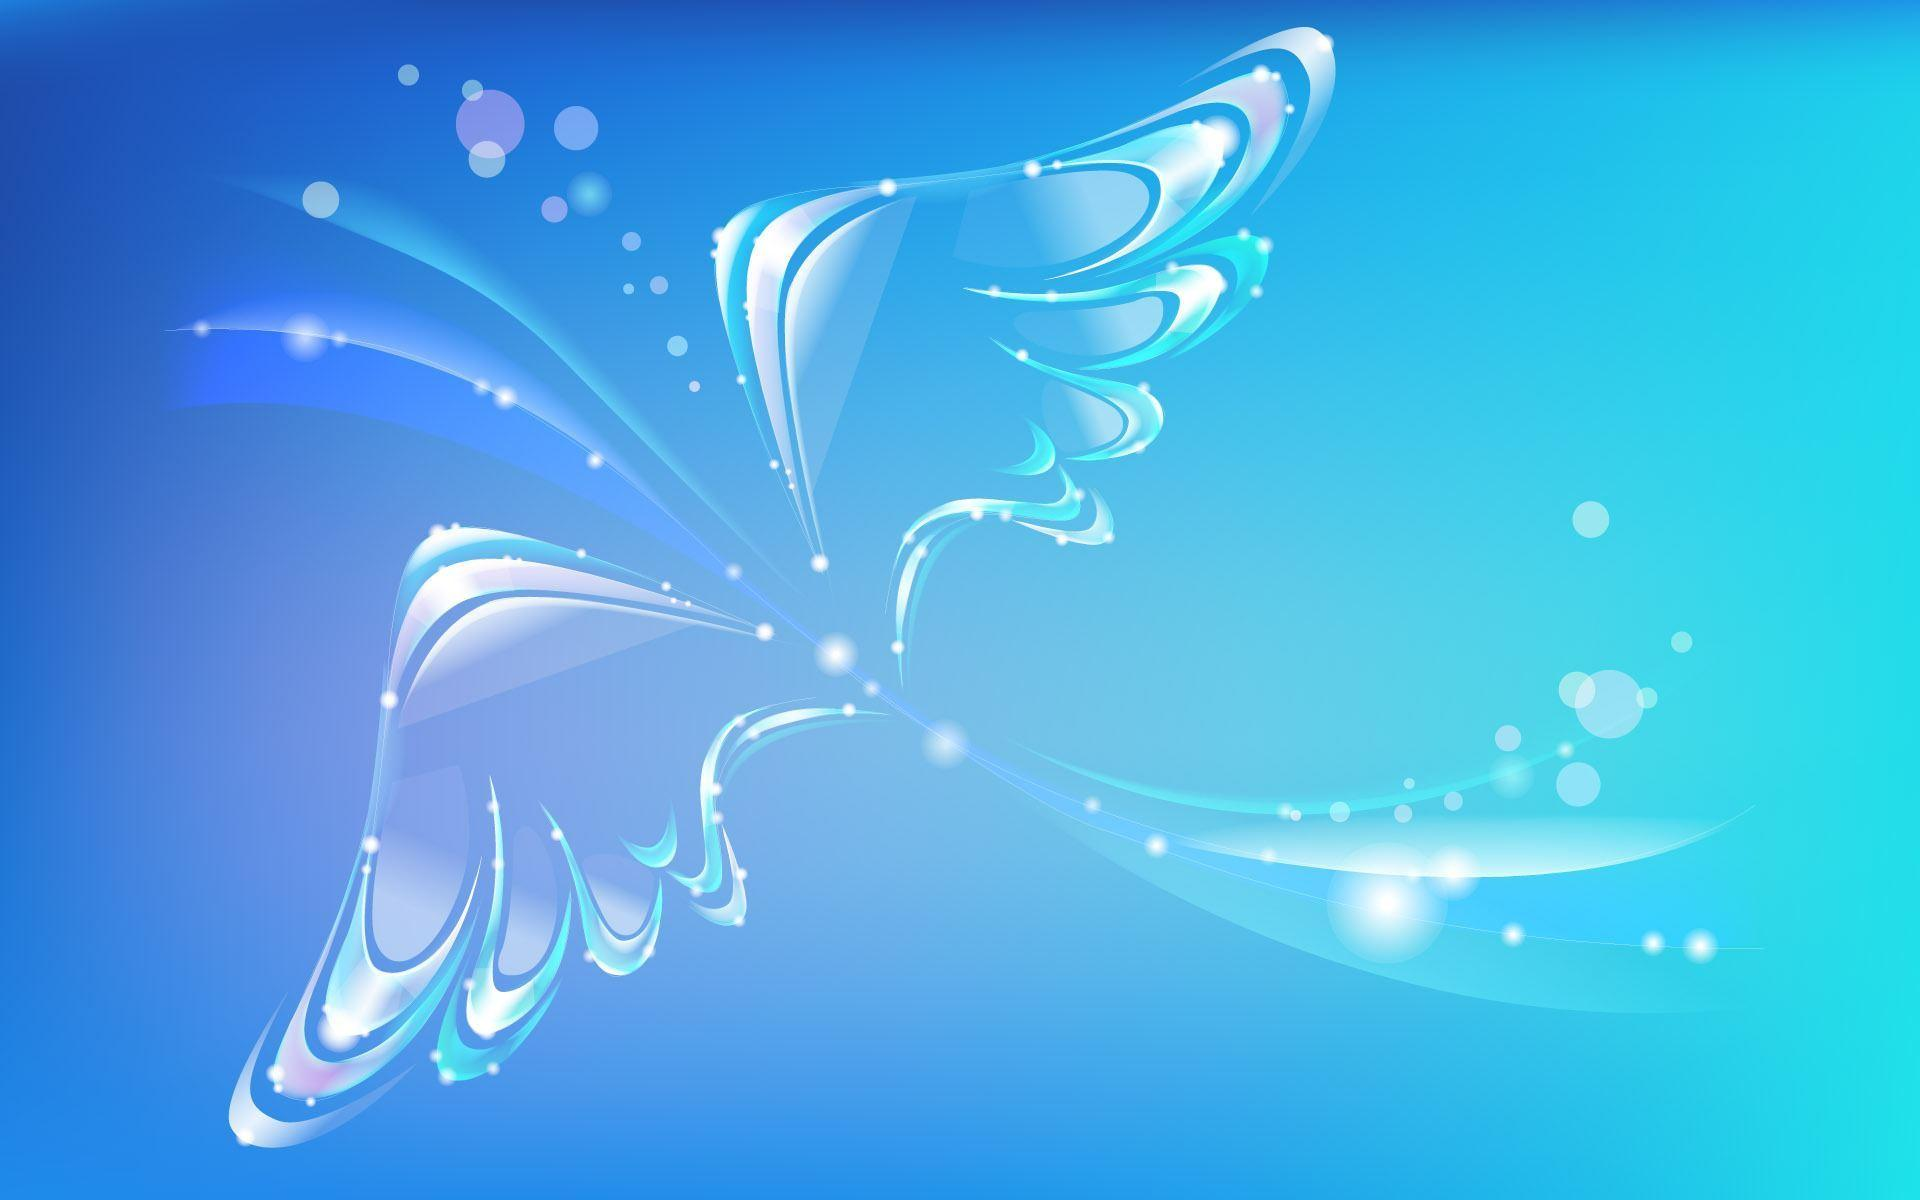 butterfly blue abstract wallpaper - photo #2